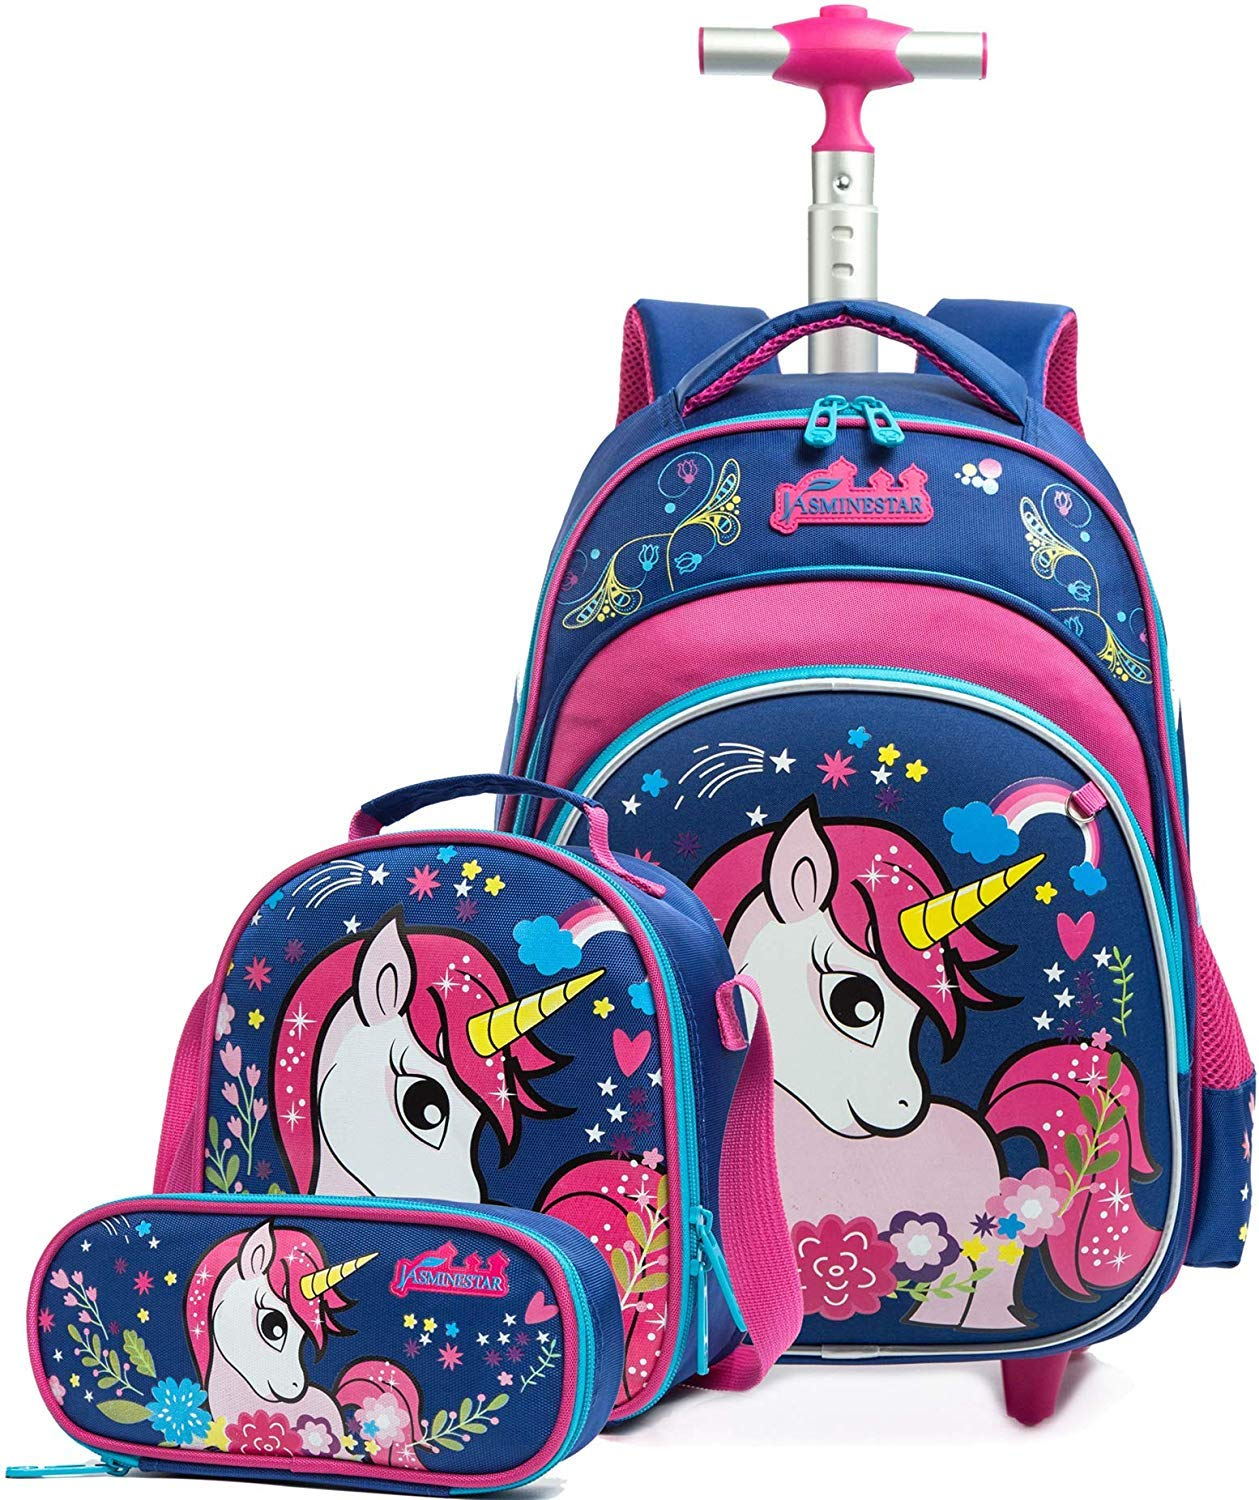 Deluxe Foldable Frozen Trolley Backpack Childrens Luggage Carry Bag